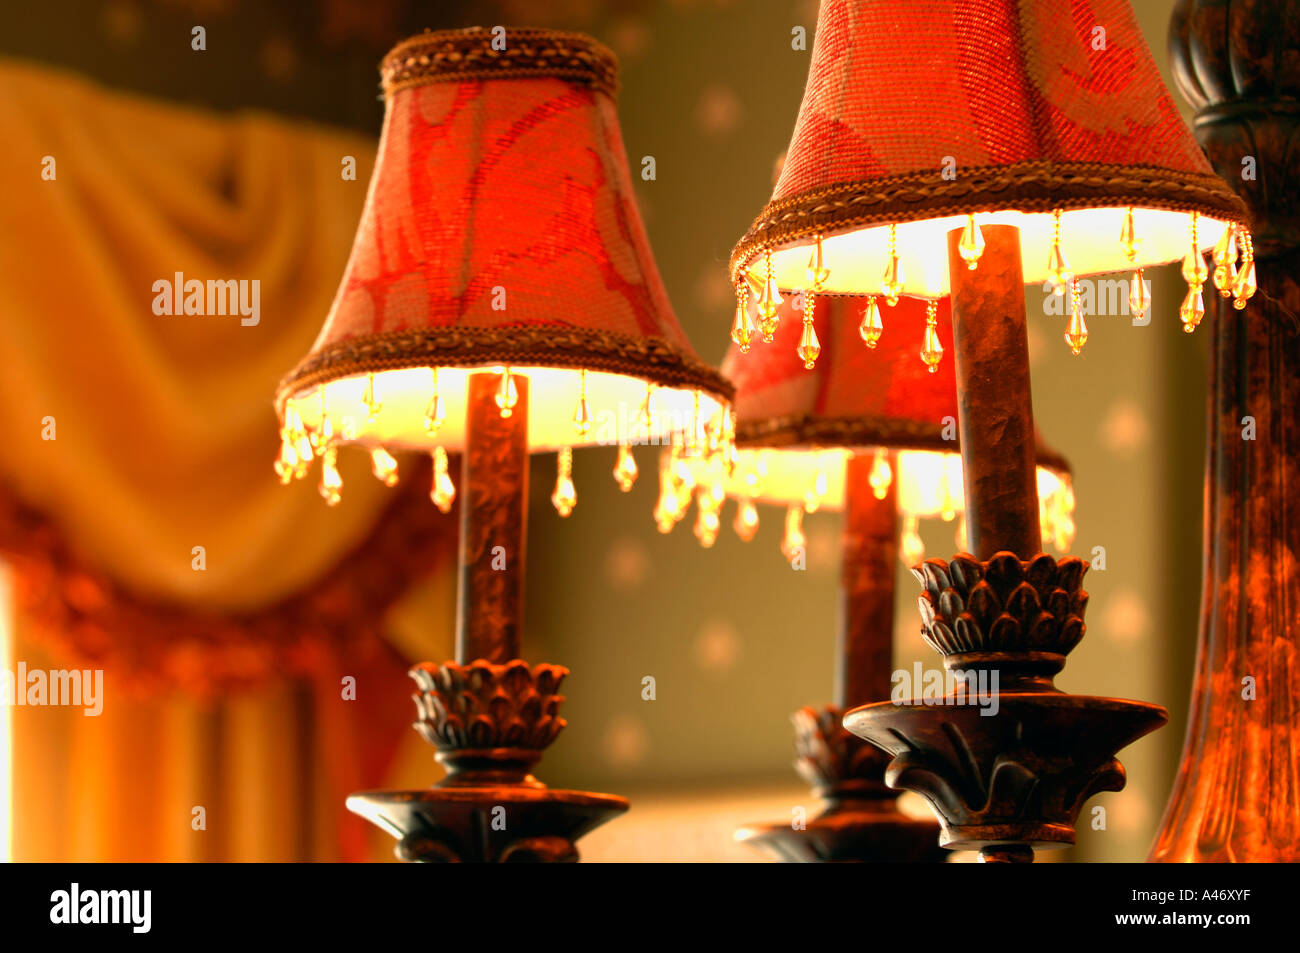 Victorian lamps - Stock Image